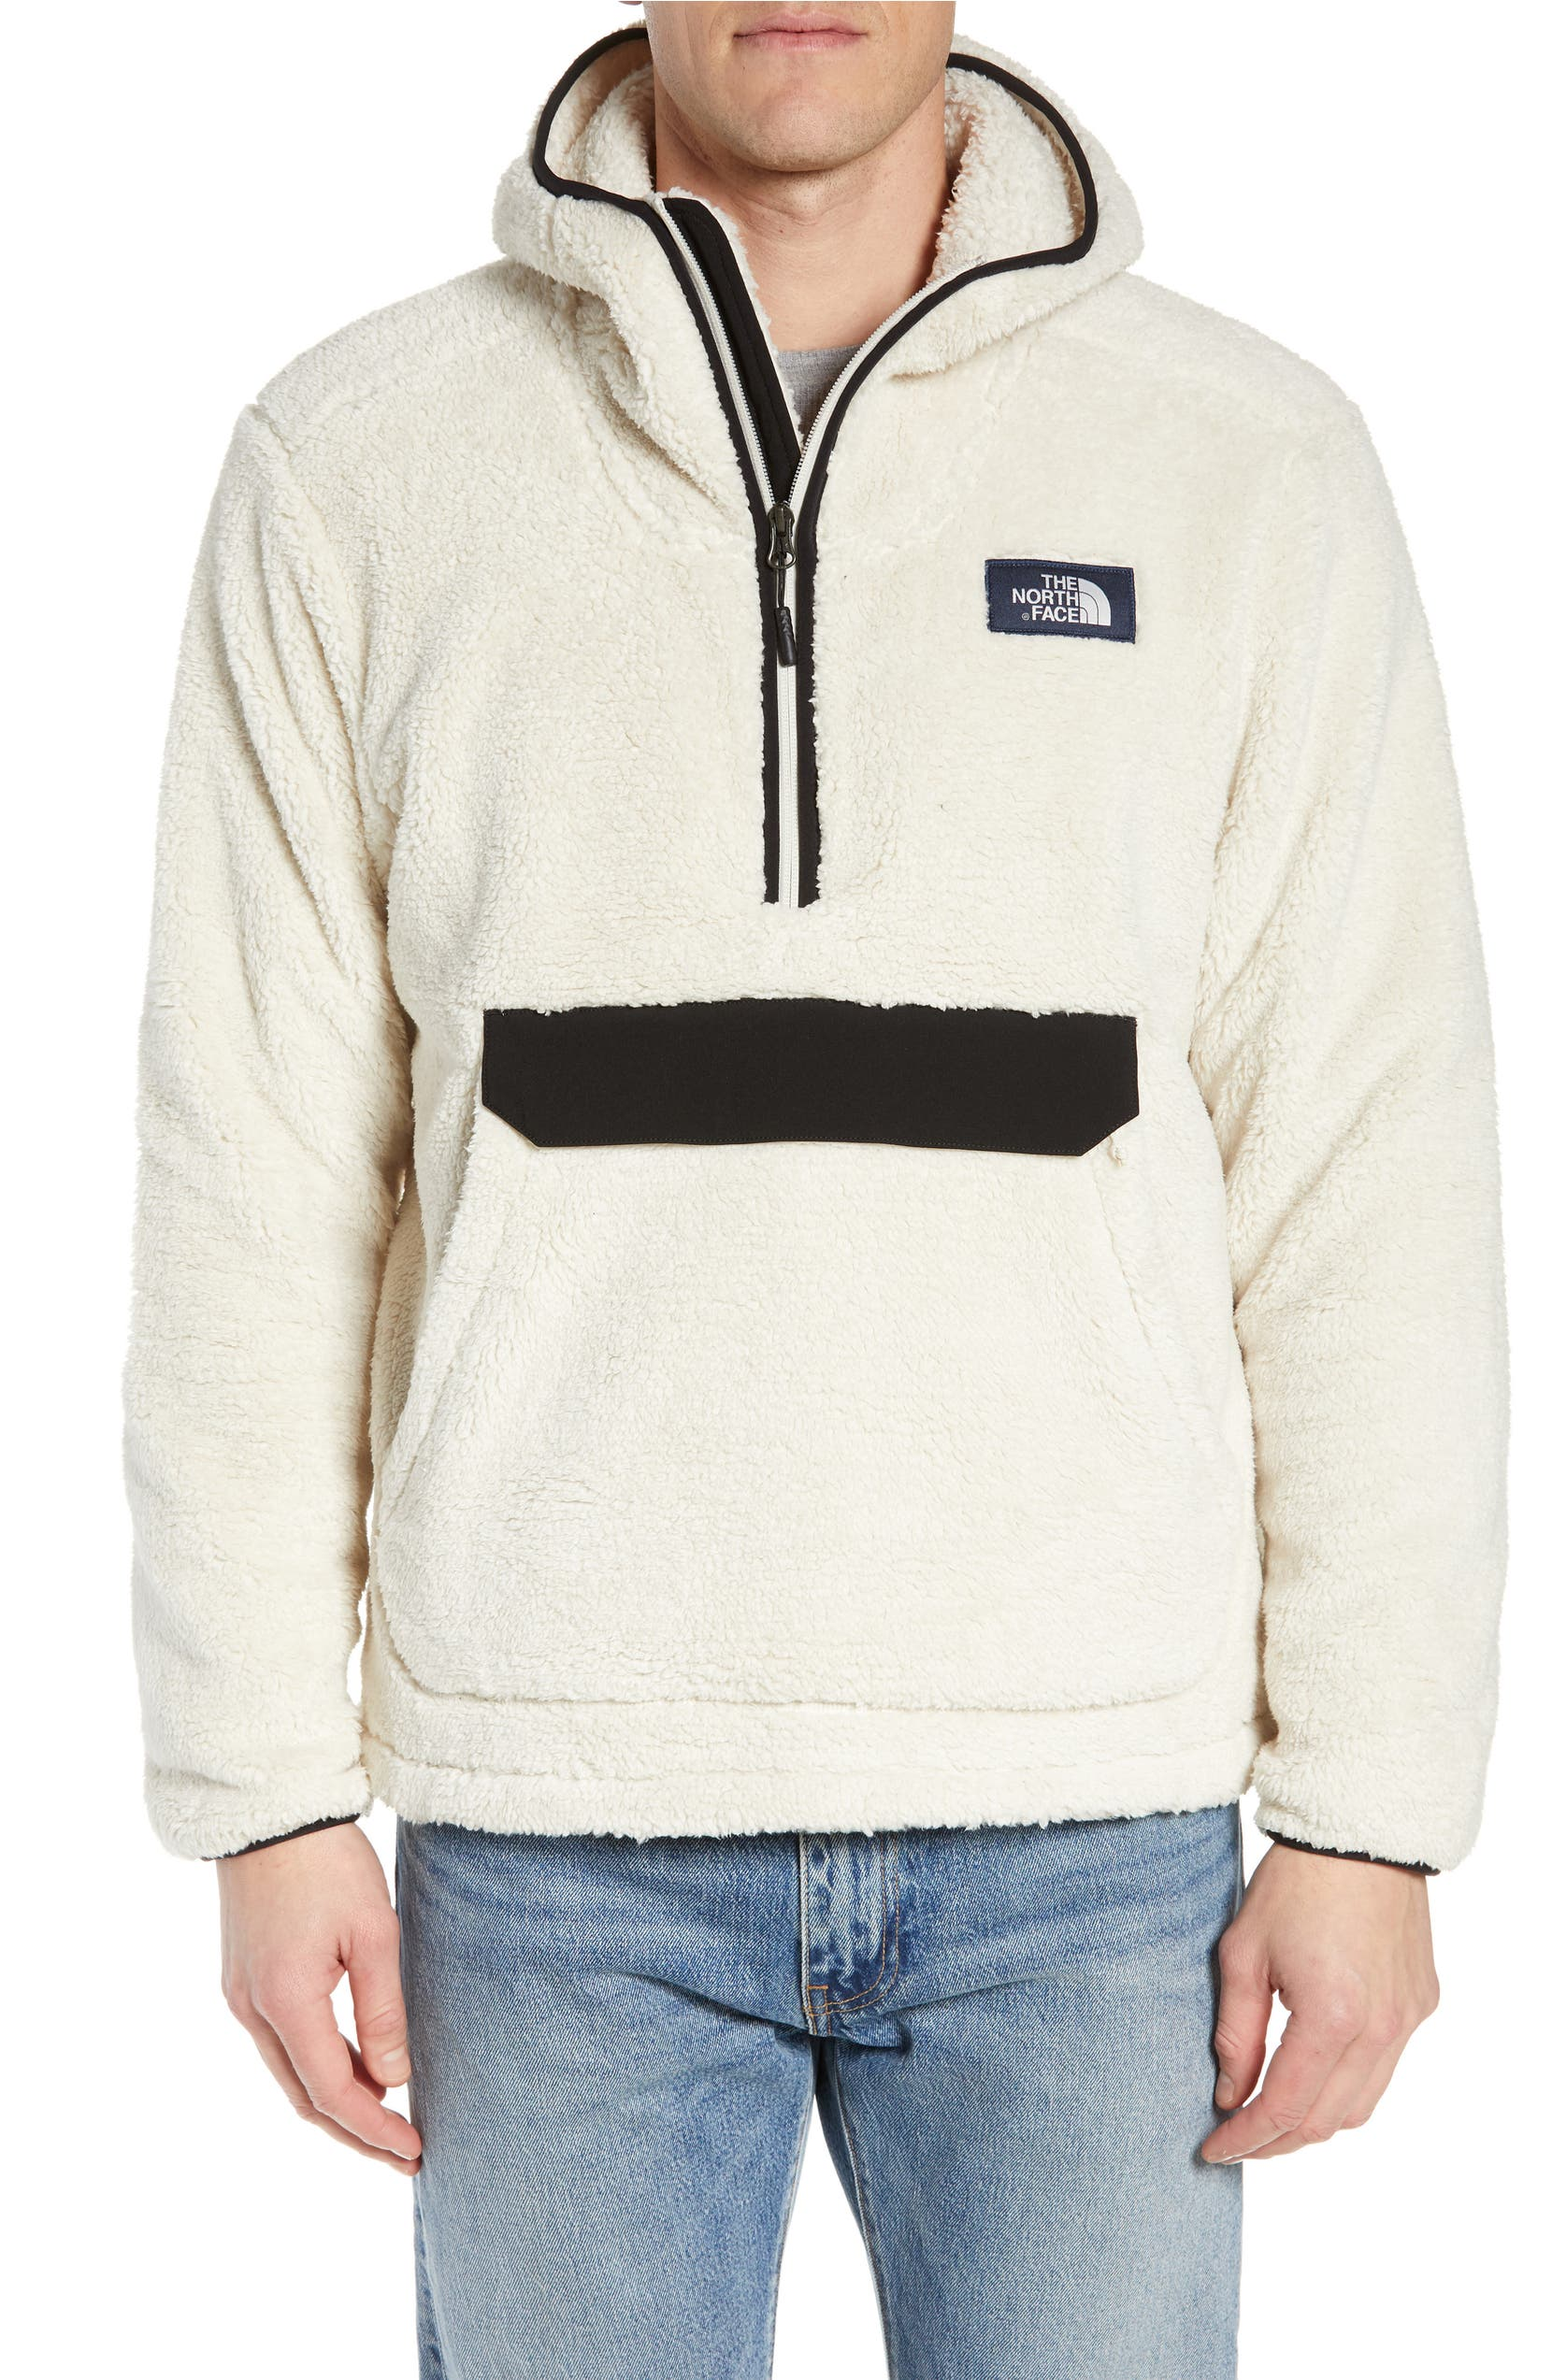 1098053ac1 The North Face Campshire Anorak Fleece Jacket